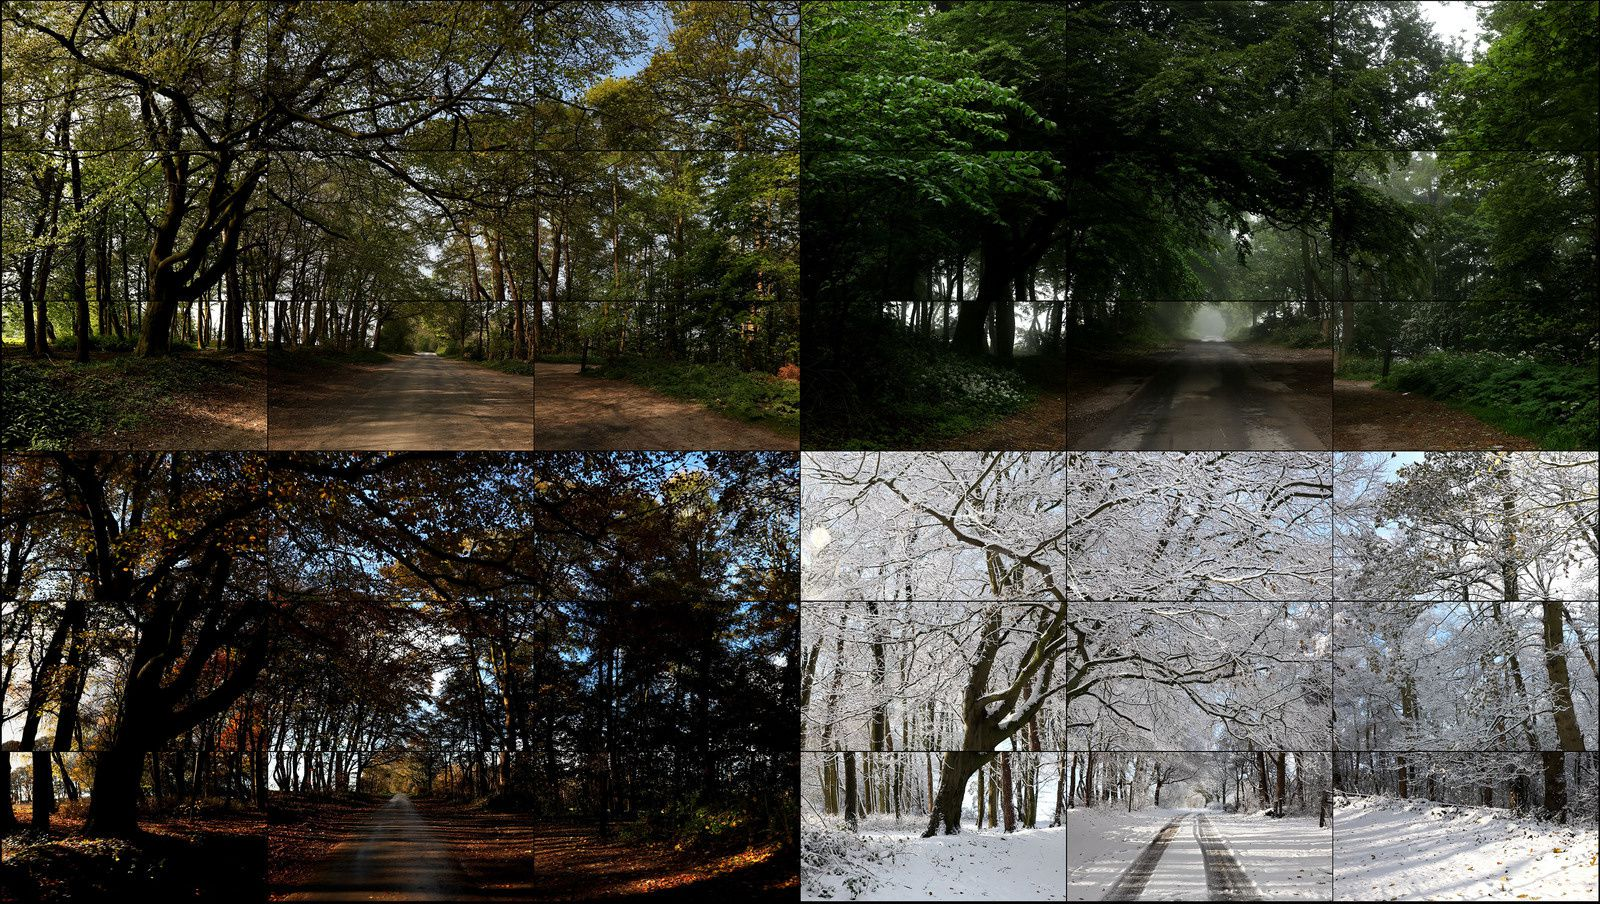 """The Fours Seasons, Woldgate Woods"", 2010 - 2011 de David HOCKNEY"